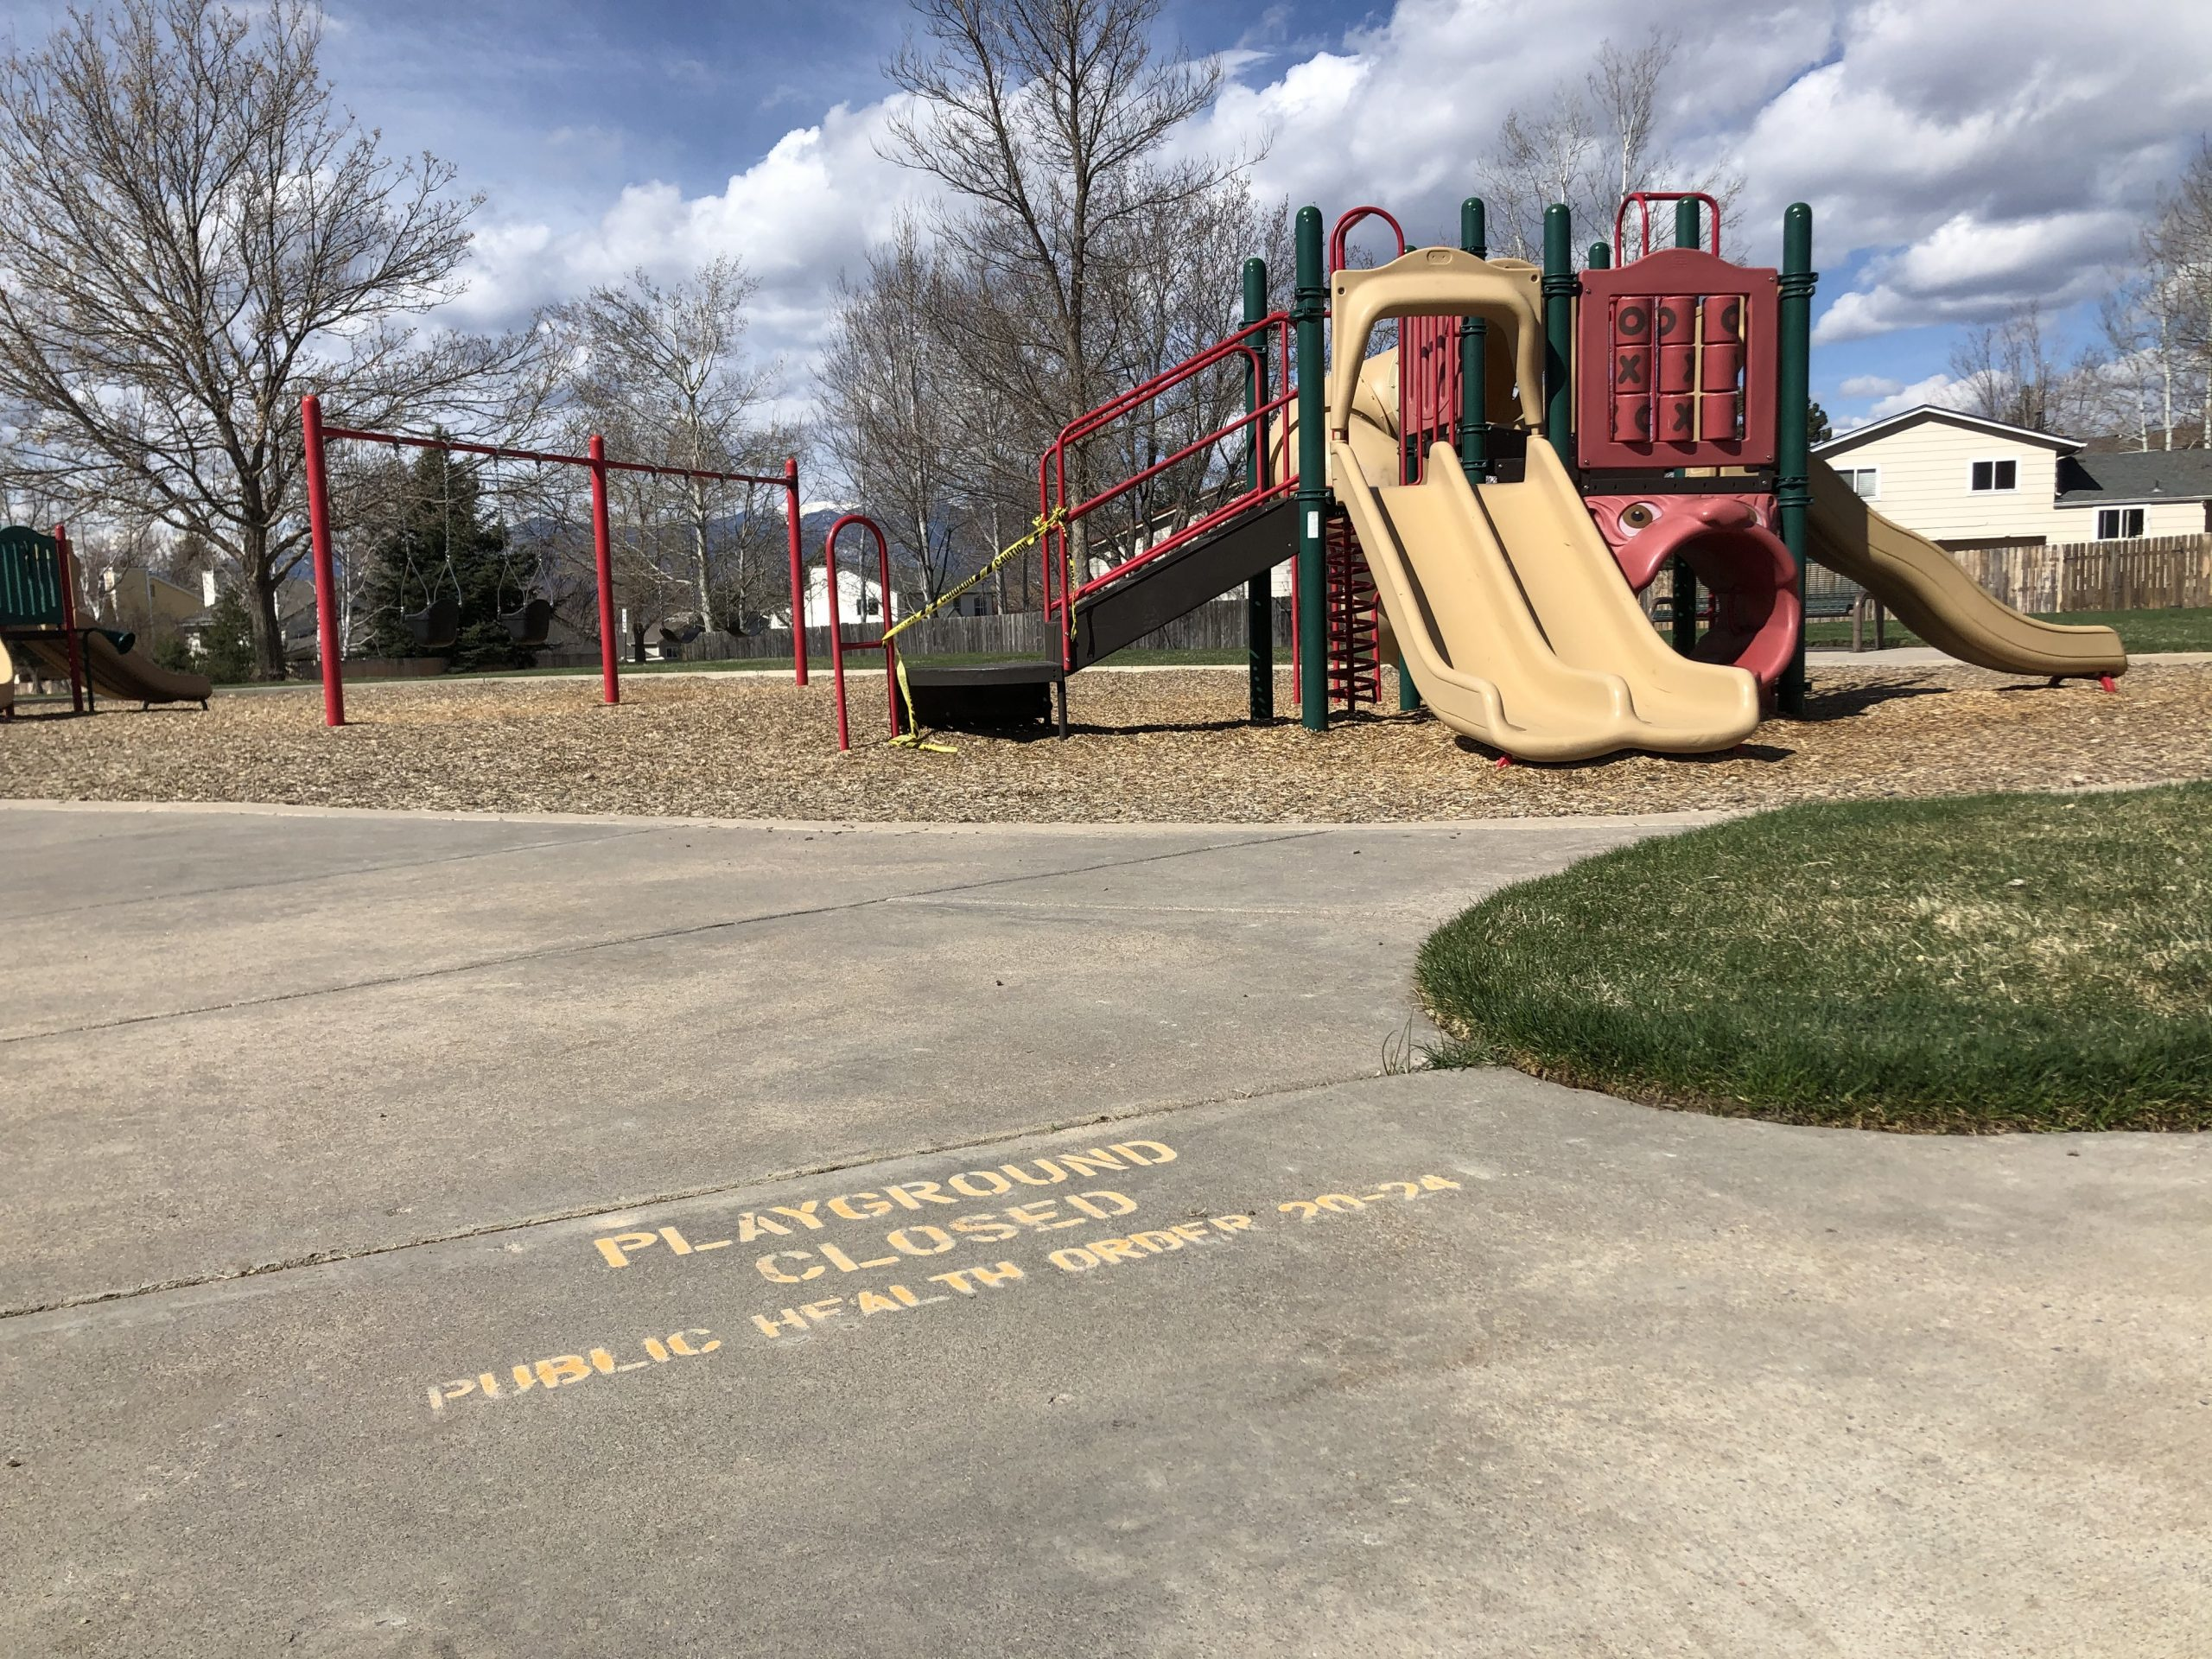 A playground in Colorado Springs indicates with writing on the pavement and tape around the equipment that it's closed due to public health orders.